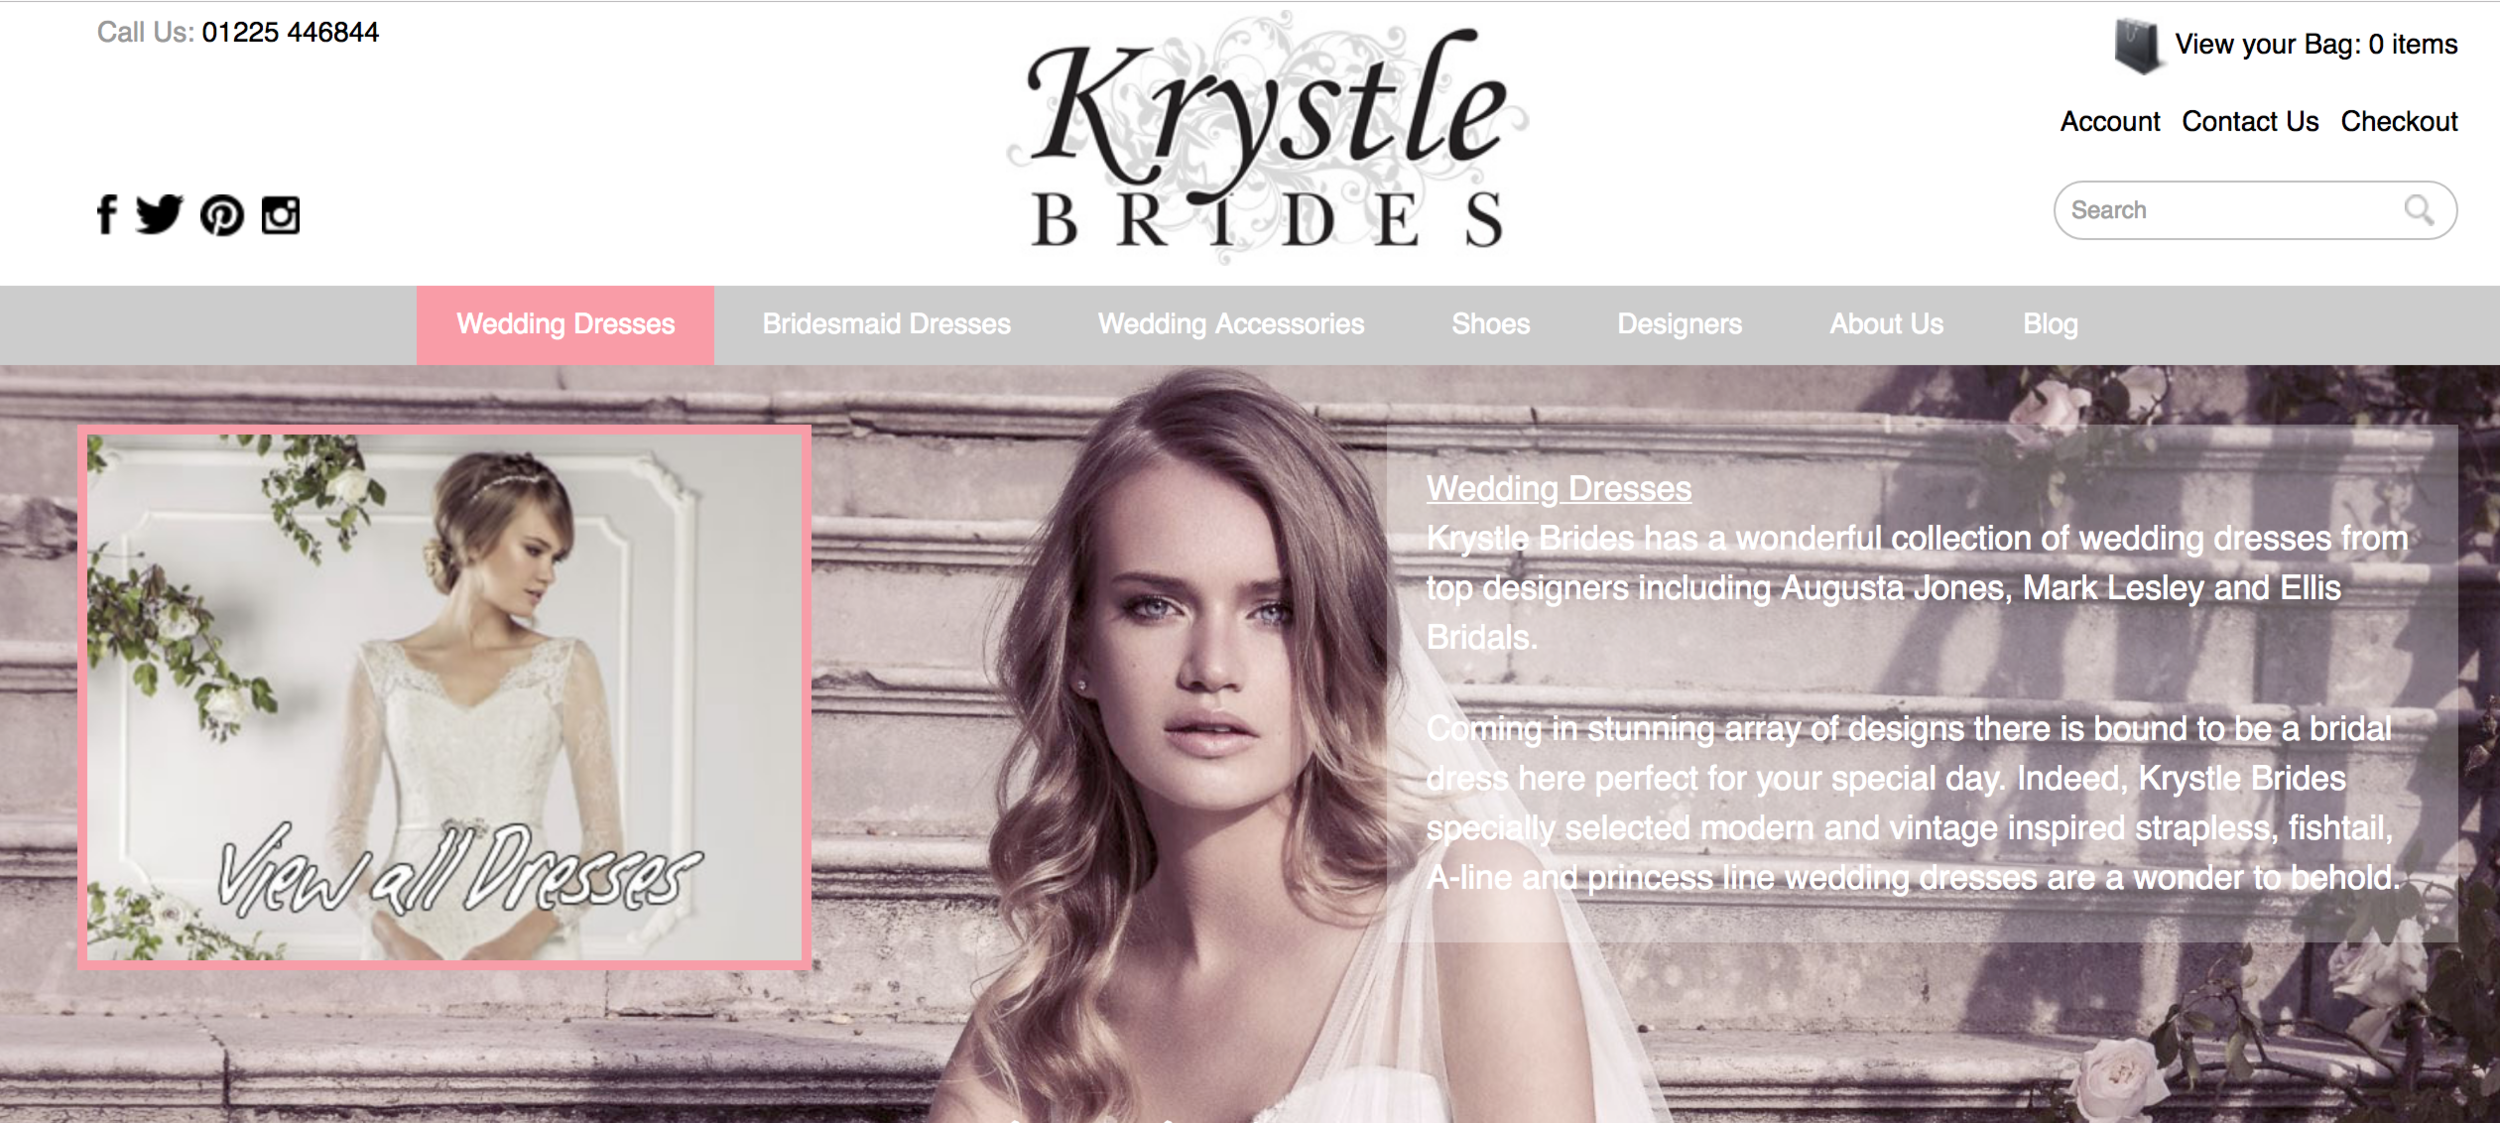 Krystle Brides - James Street Bath